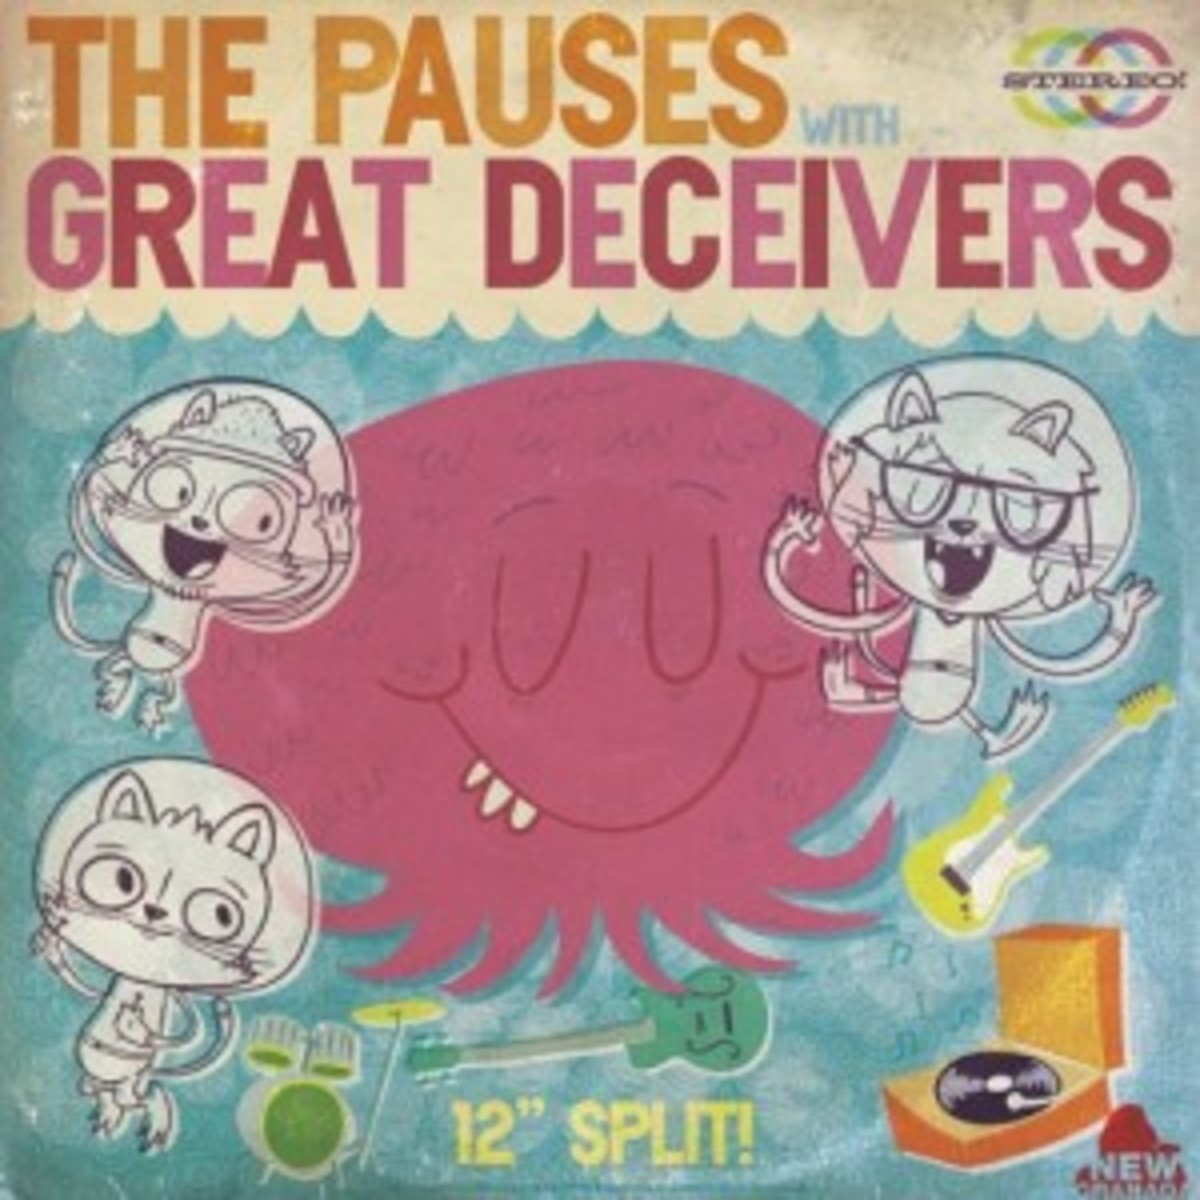 The Pauses Great Deceivers